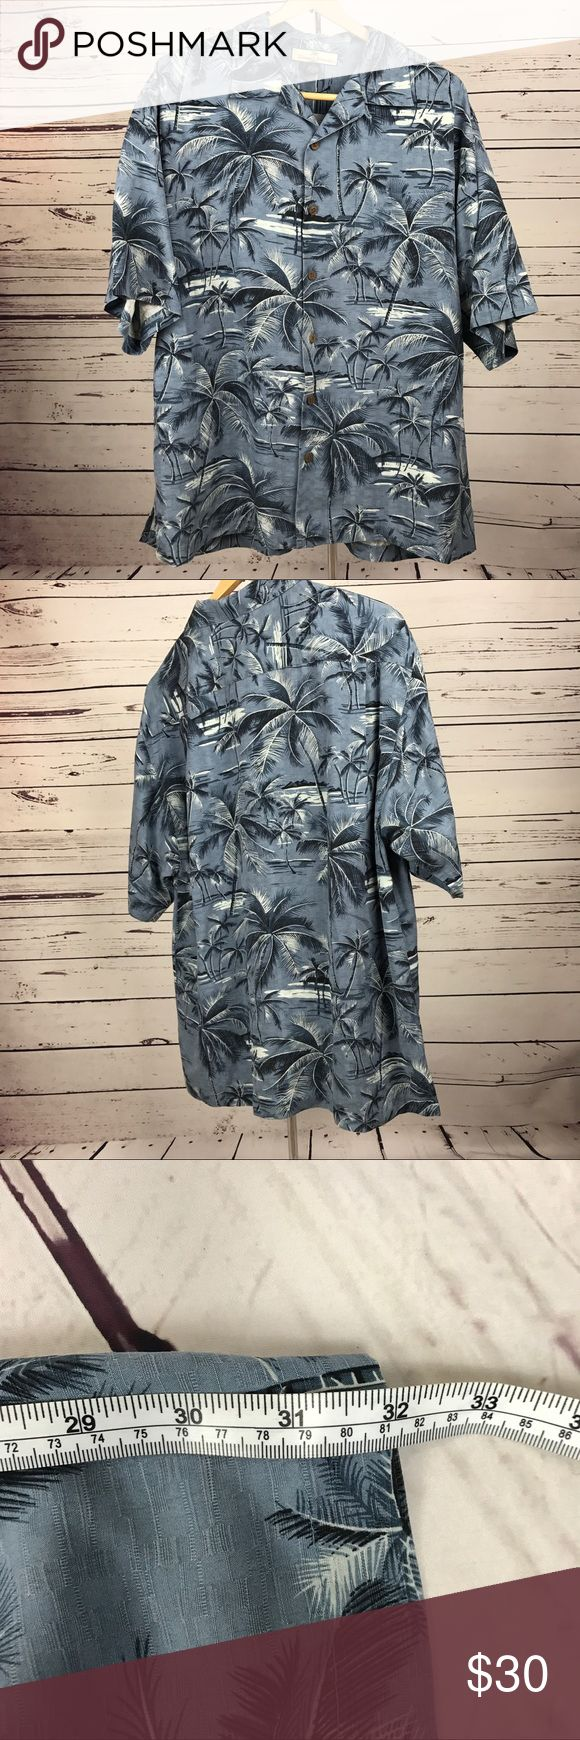 Tommy Bahama men's silk shirt LG Handsome and in perfect condition this Tommy Bahama shirt is the perfect slim shirt for lounging while classy. Tommy Bahama Shirts Casual Button Down Shirts